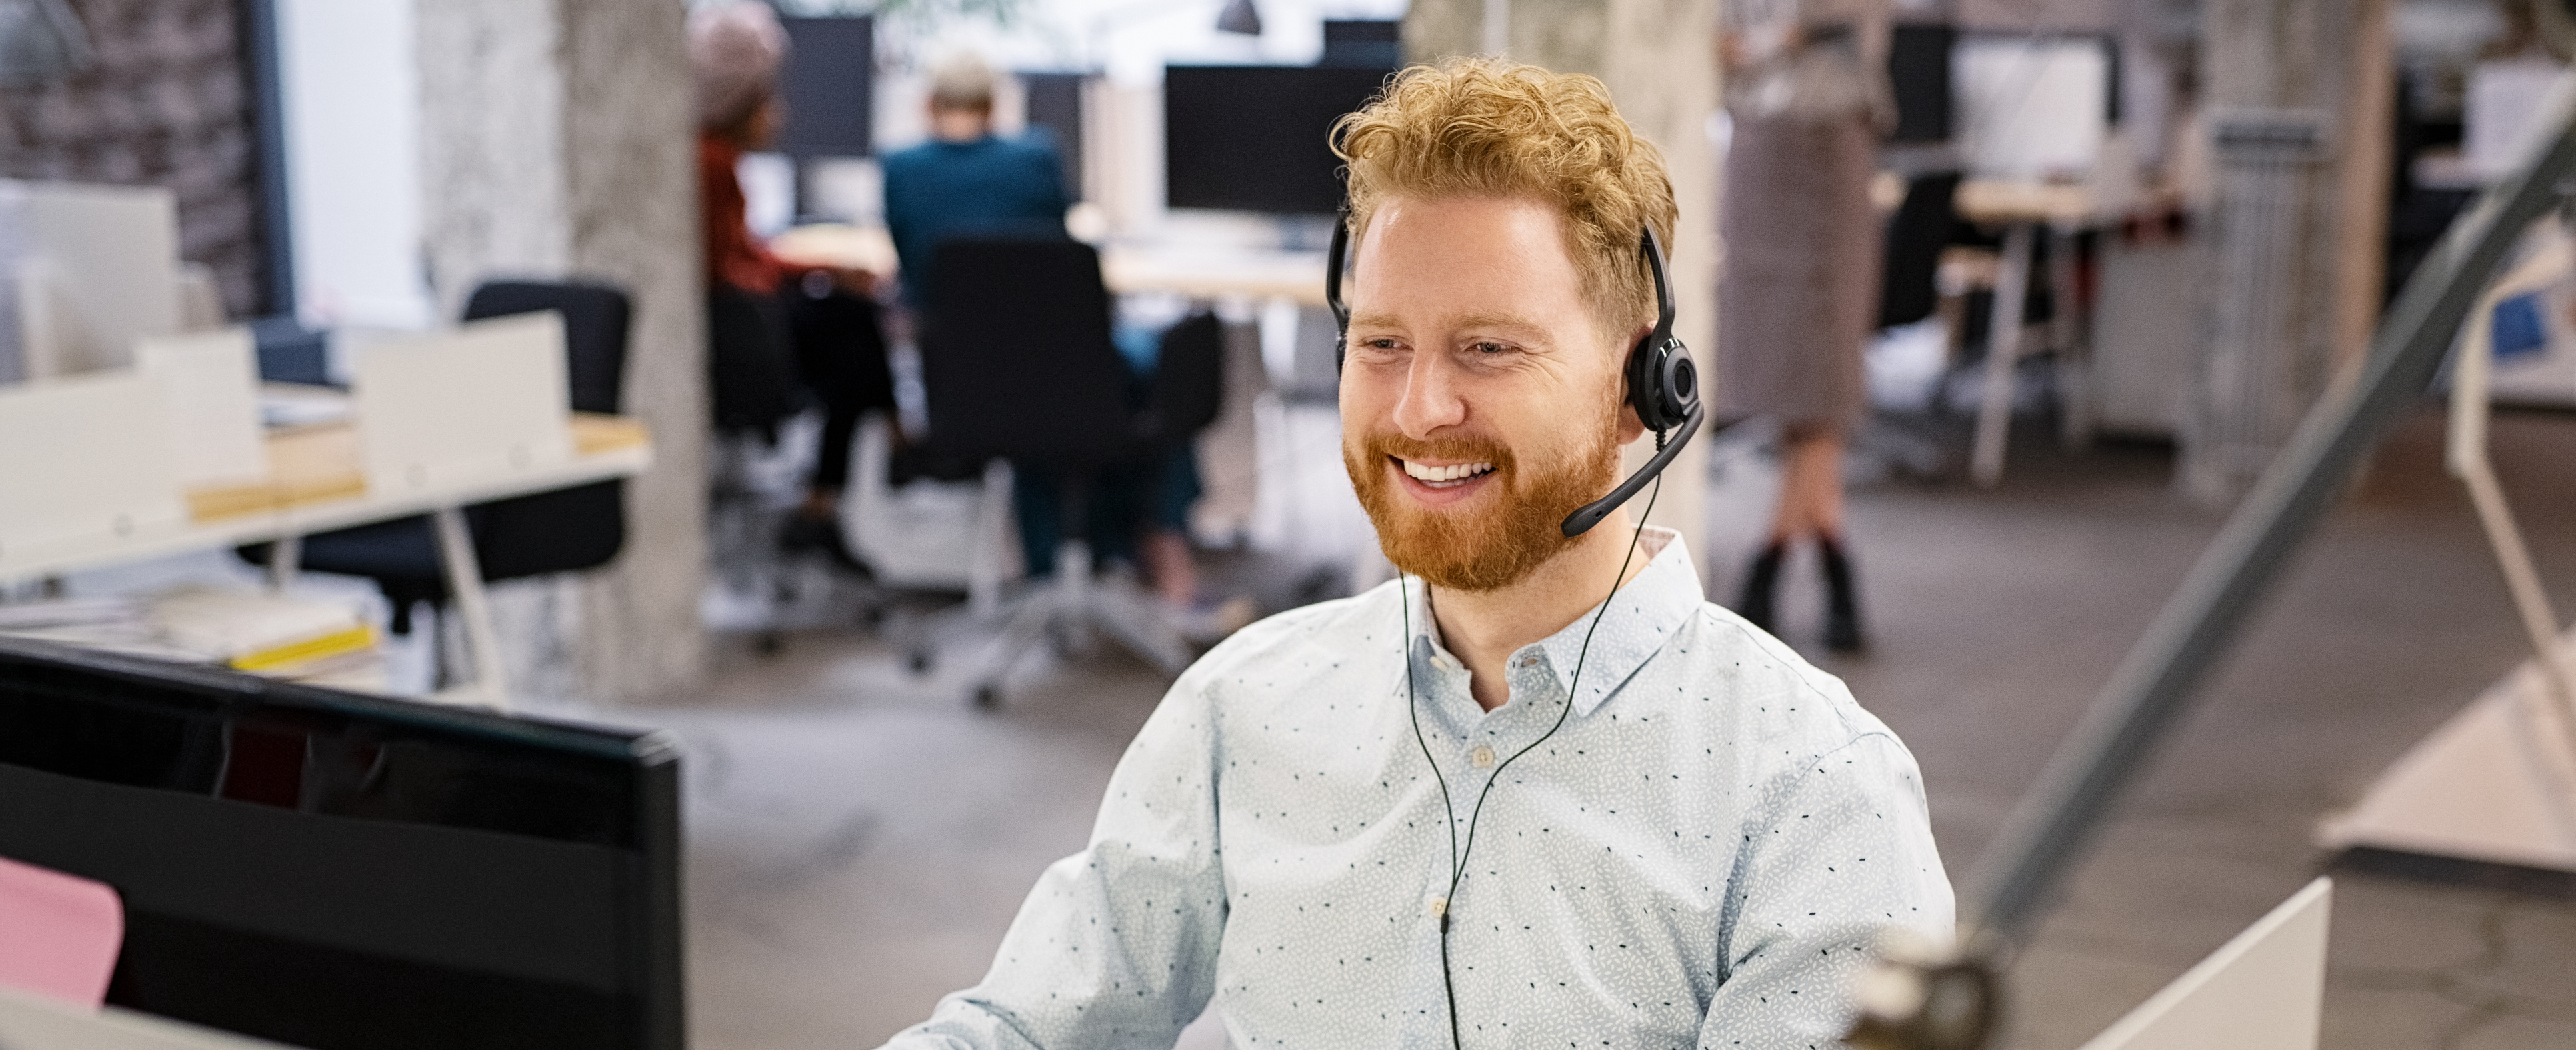 How a knowledge base helped a call center cross-train agents in one day